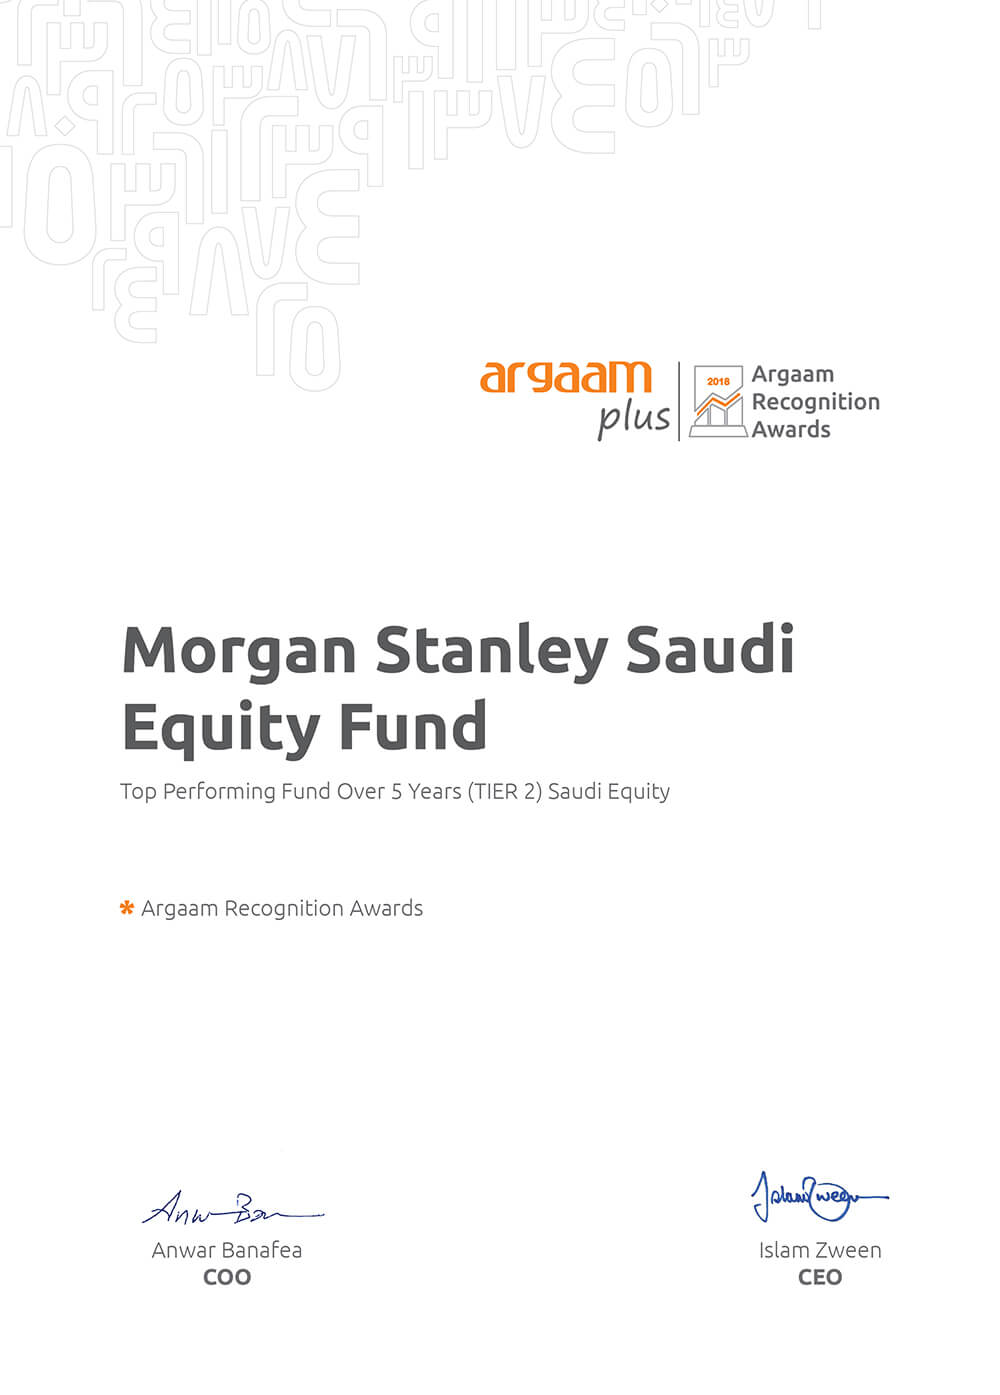 top-performing-fund-over-5-years-tier-2-saudi-equity